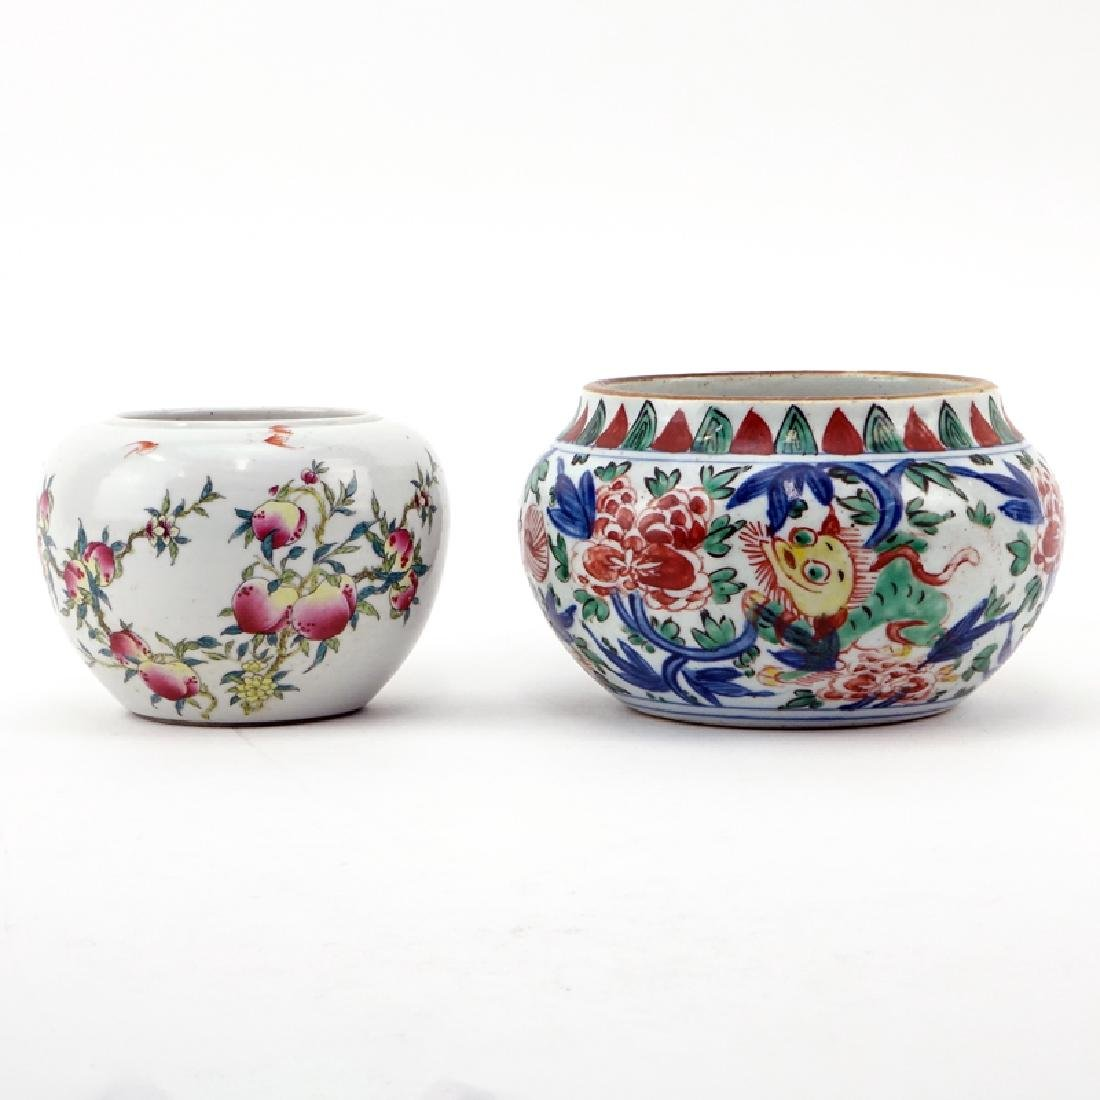 Grouping of Two (2) Chinese Porcelain Tableware.